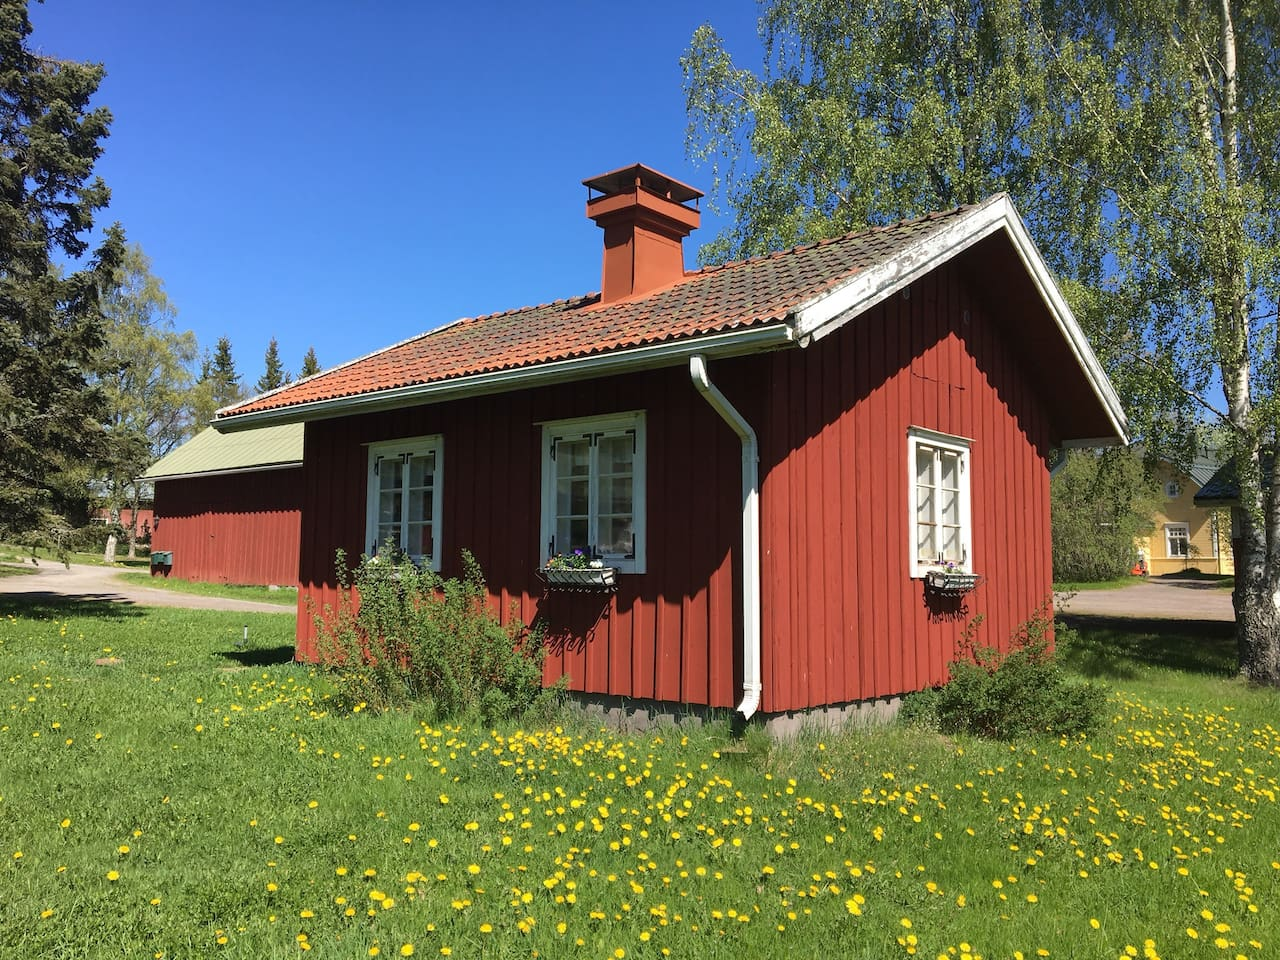 The Savings Cottage: a copy of the first savings bank in Finland